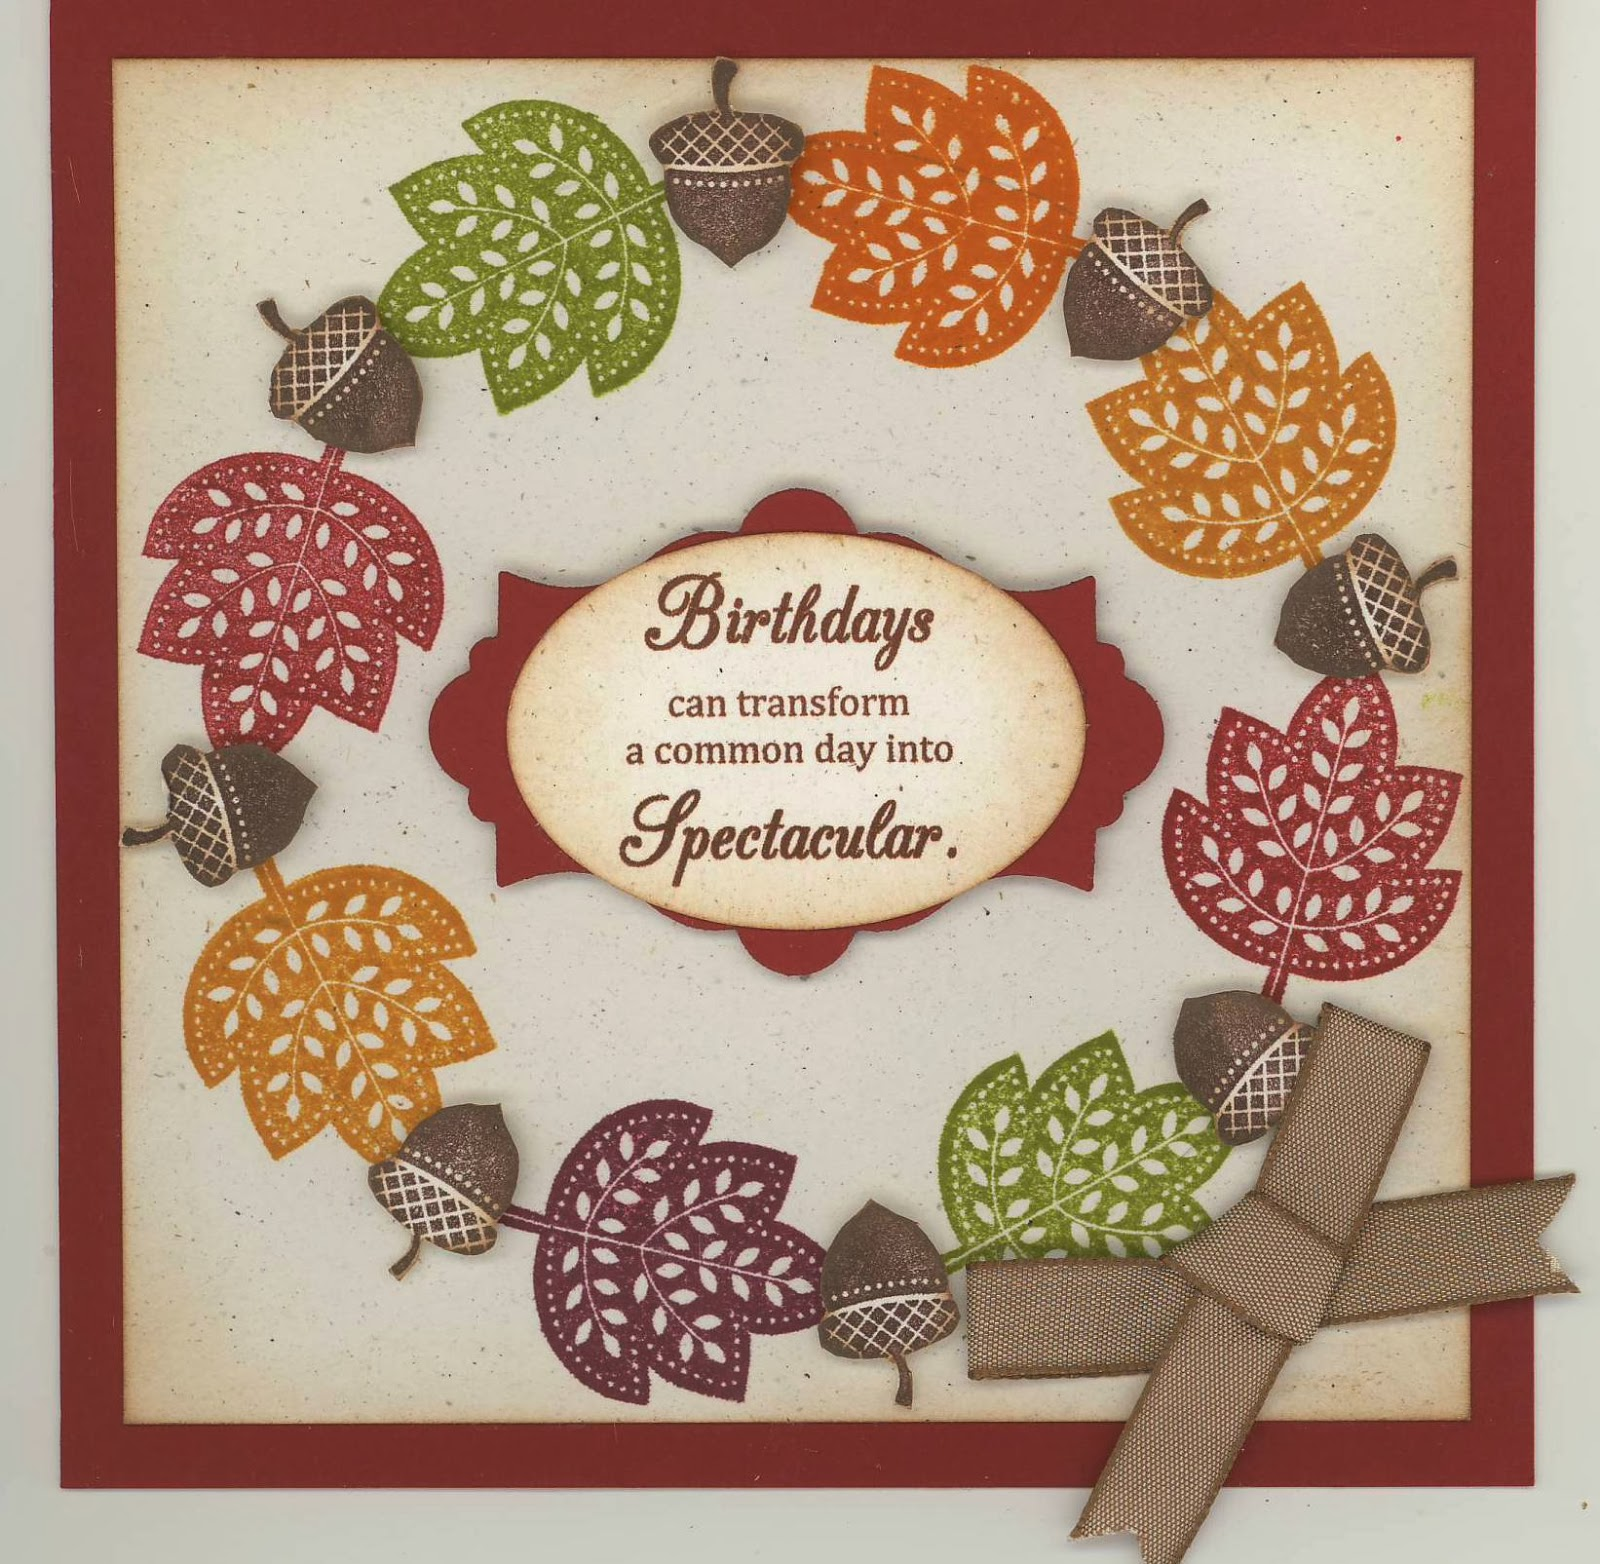 Chatterbox Creations October Sister in Law Birthday 7